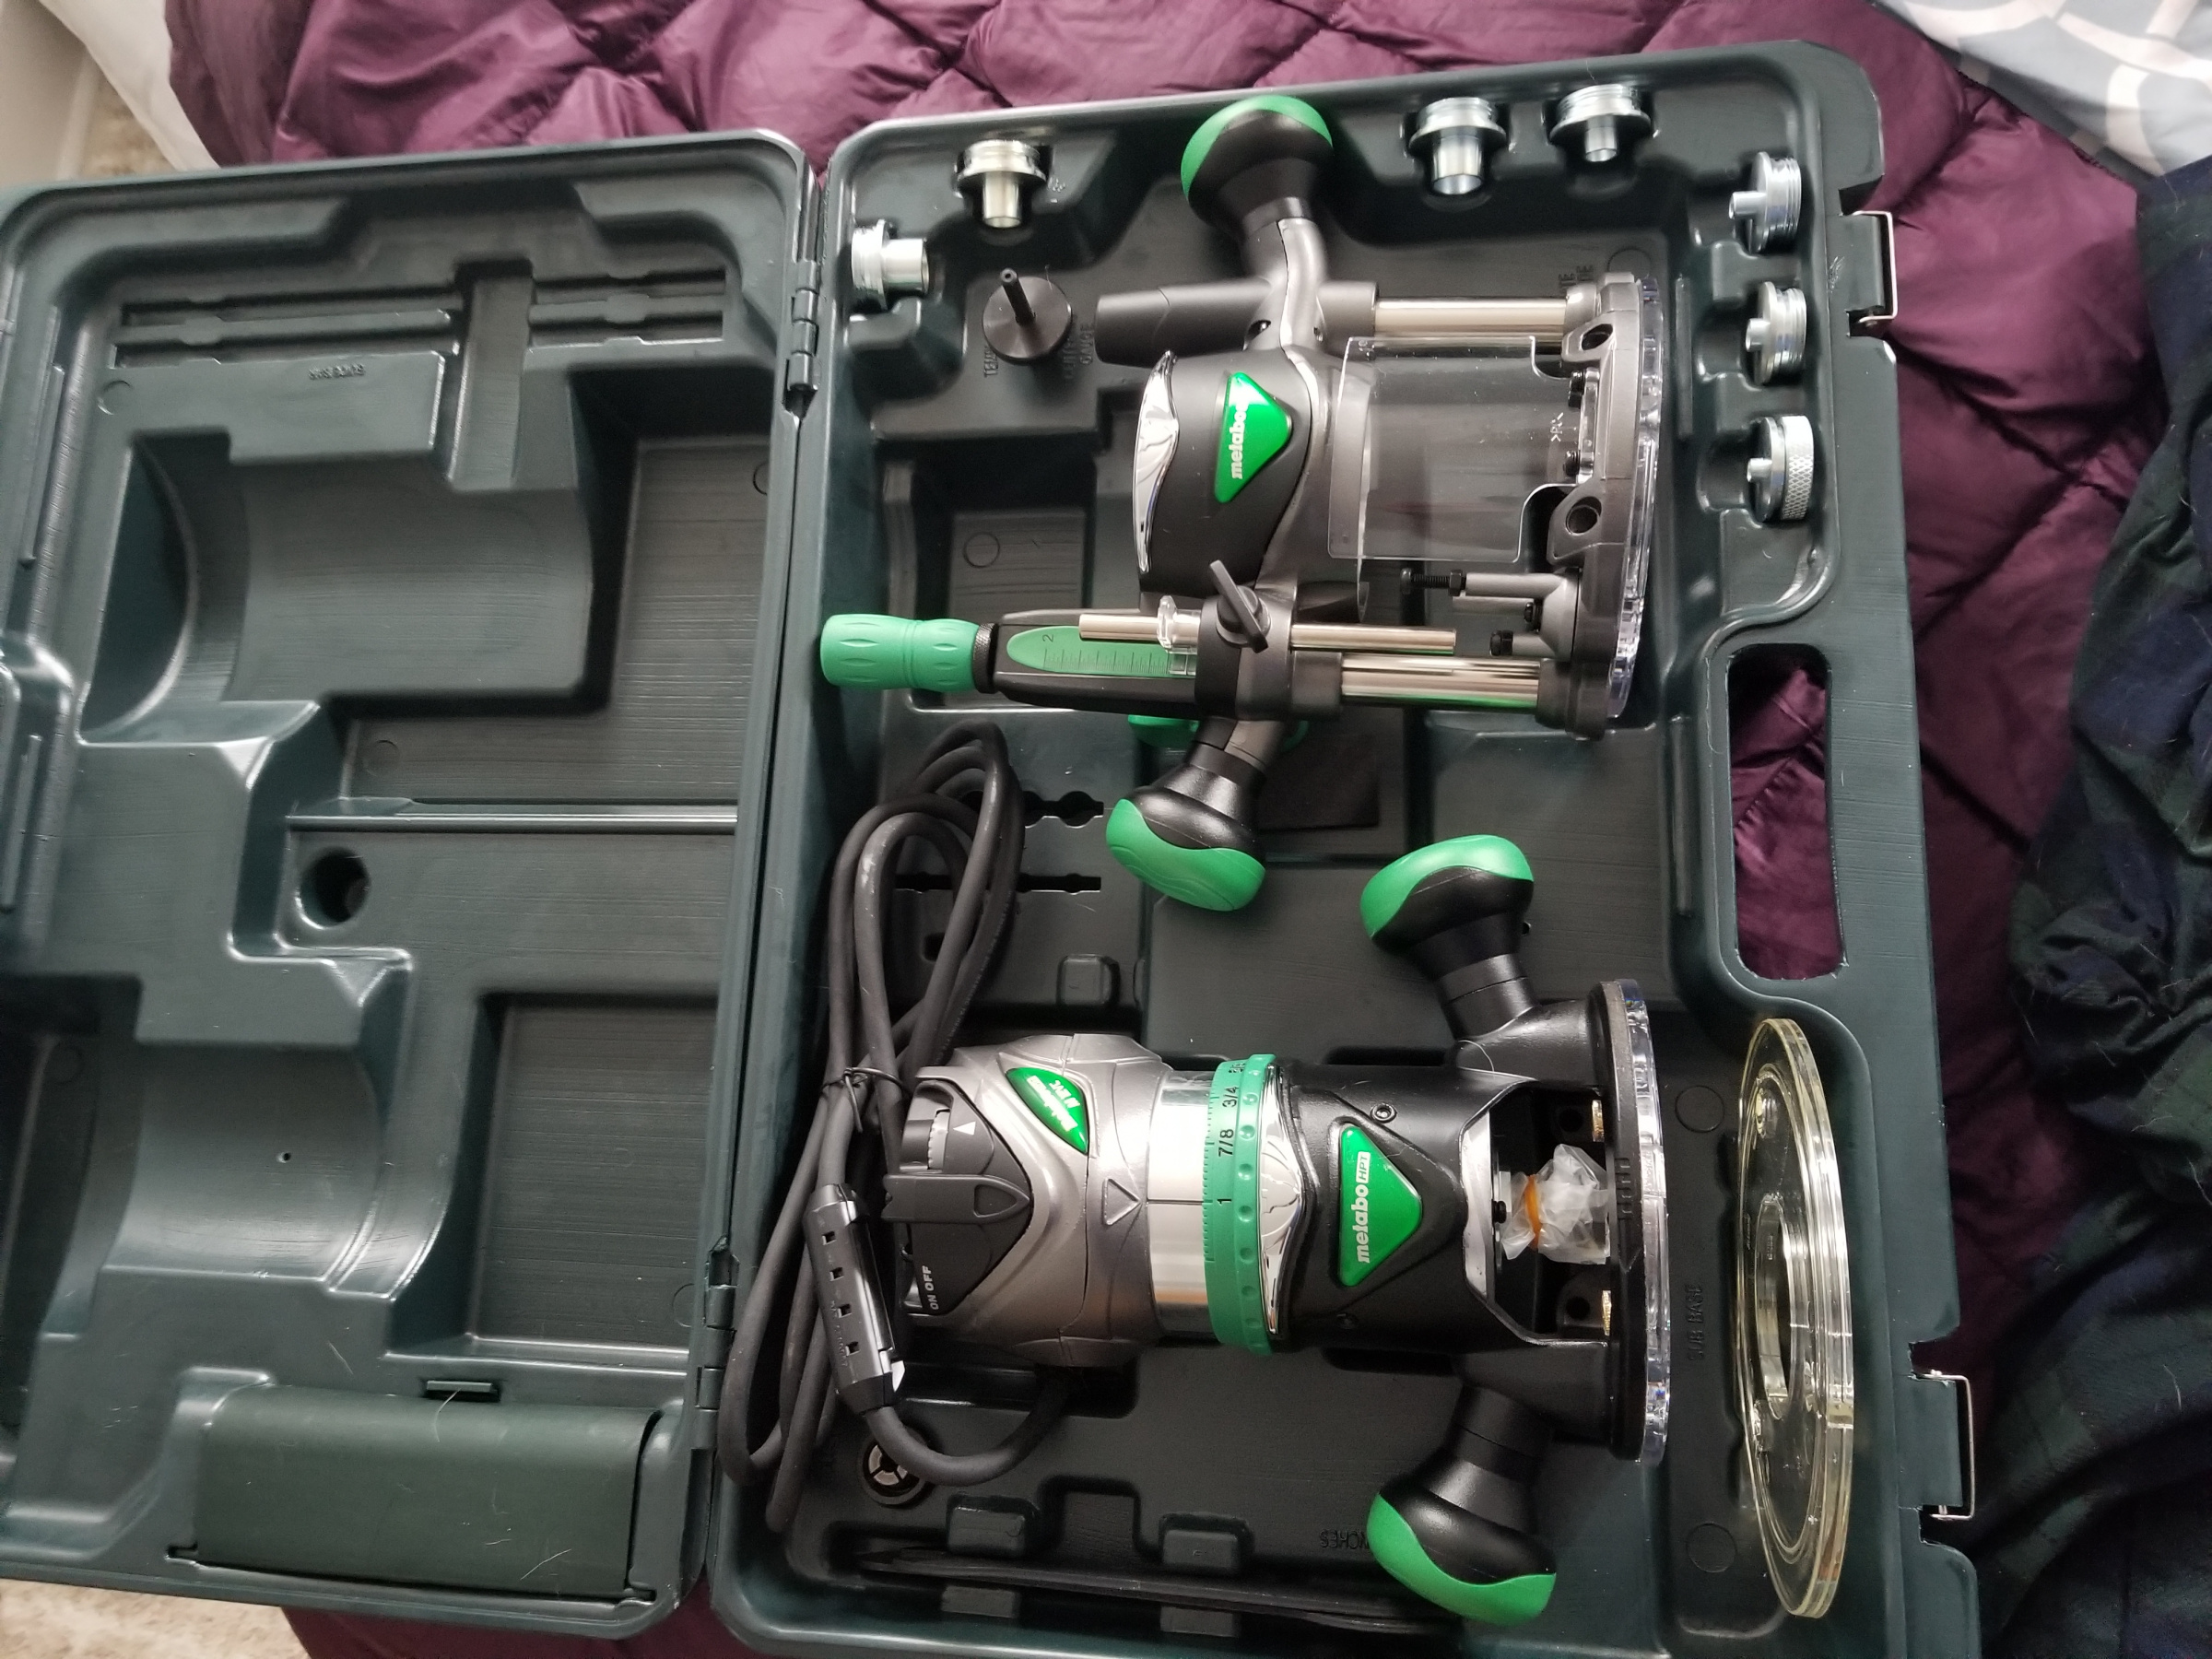 My new toy Metabo HPT Router set-shiny_new_toy.jpg